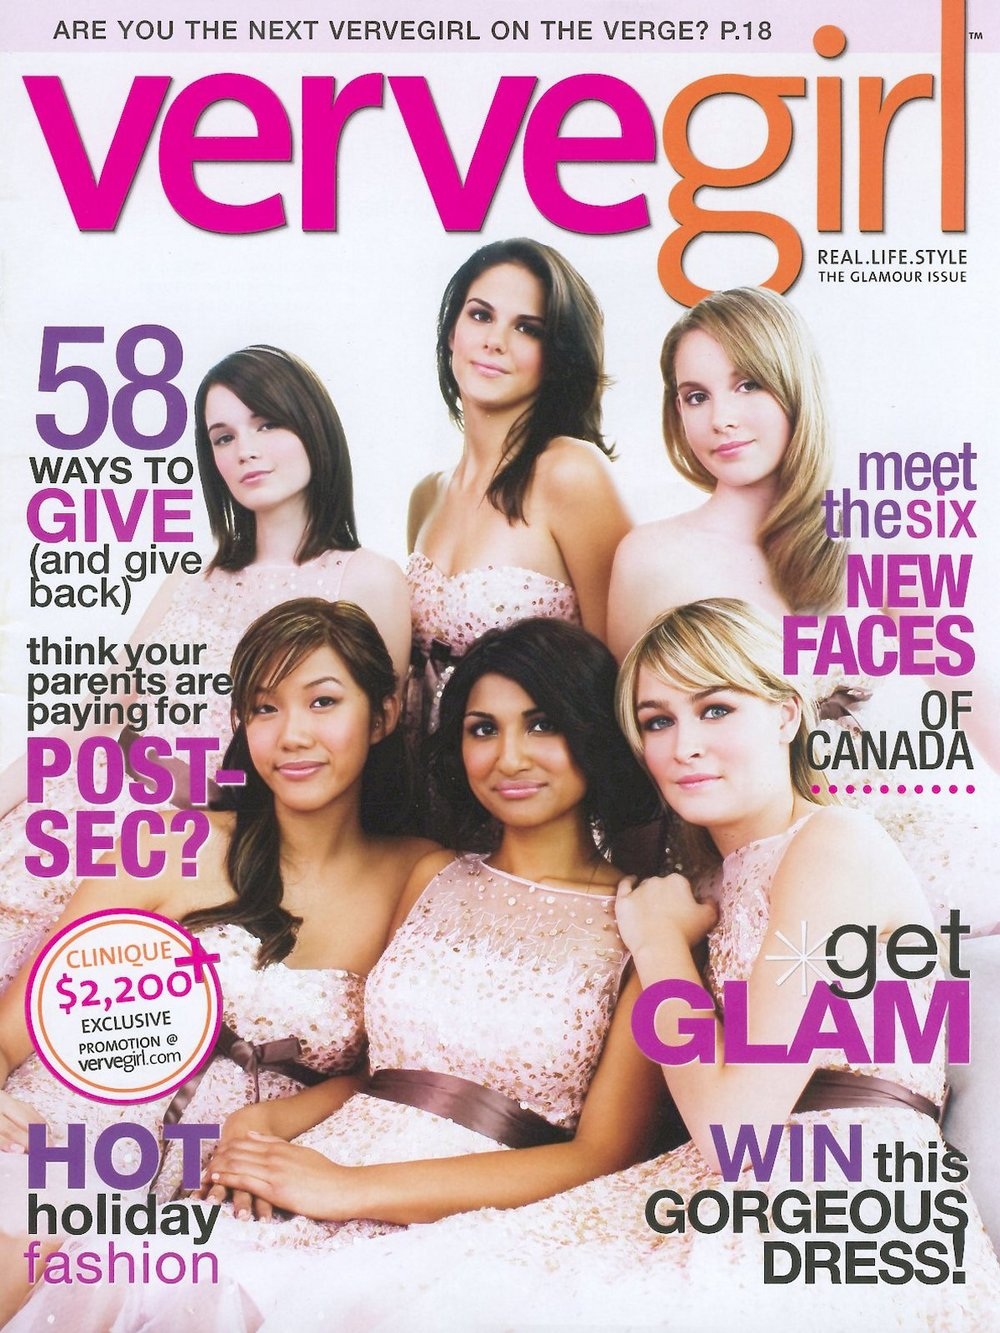 Verve Girl Cover.jpg